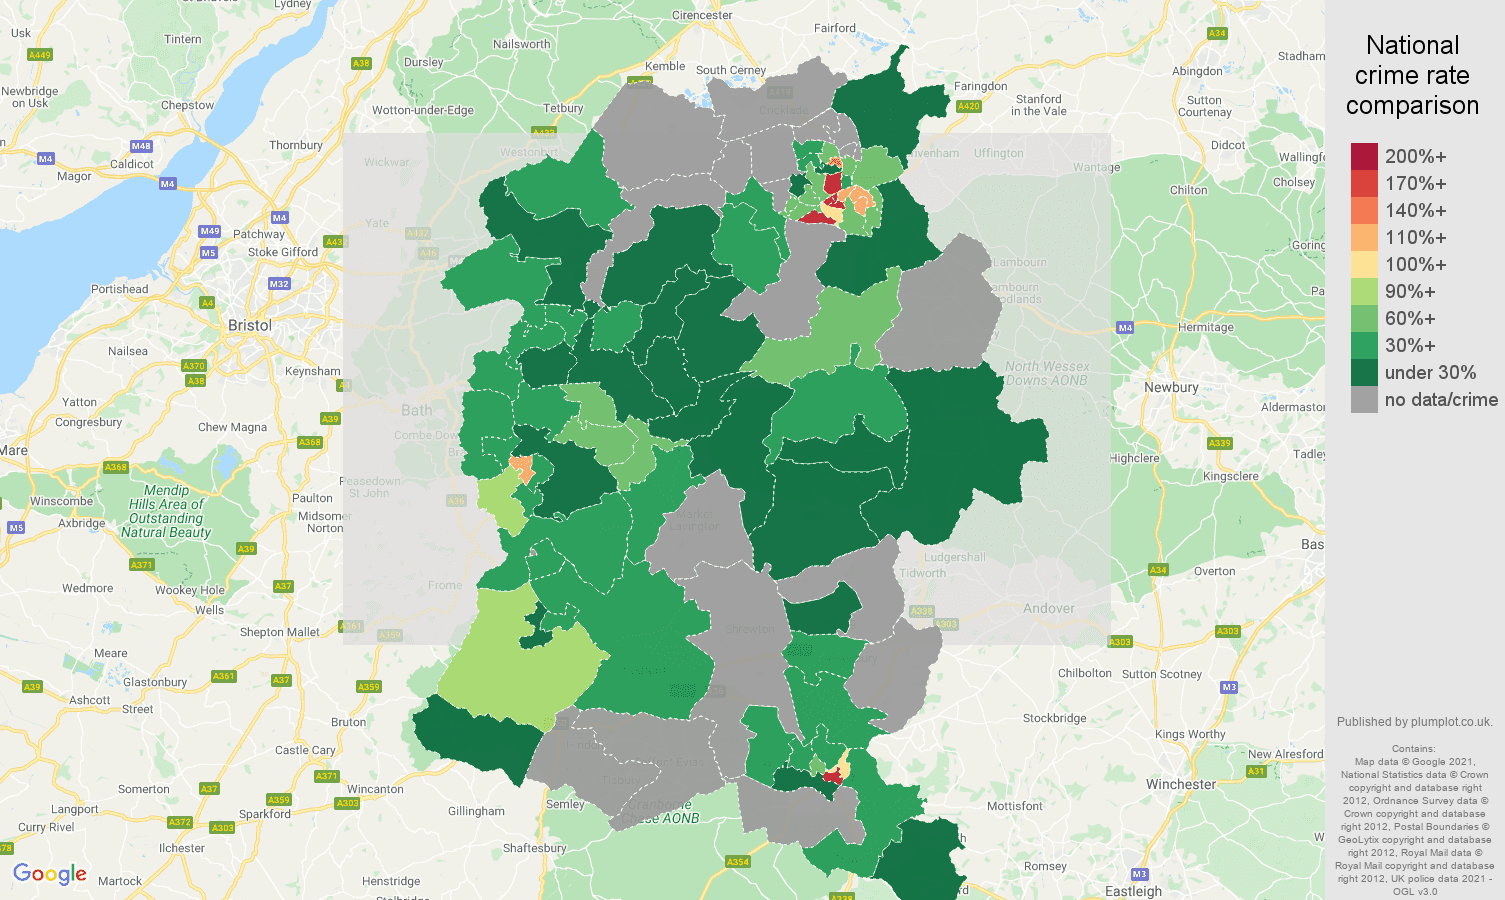 Wiltshire bicycle theft crime rate comparison map